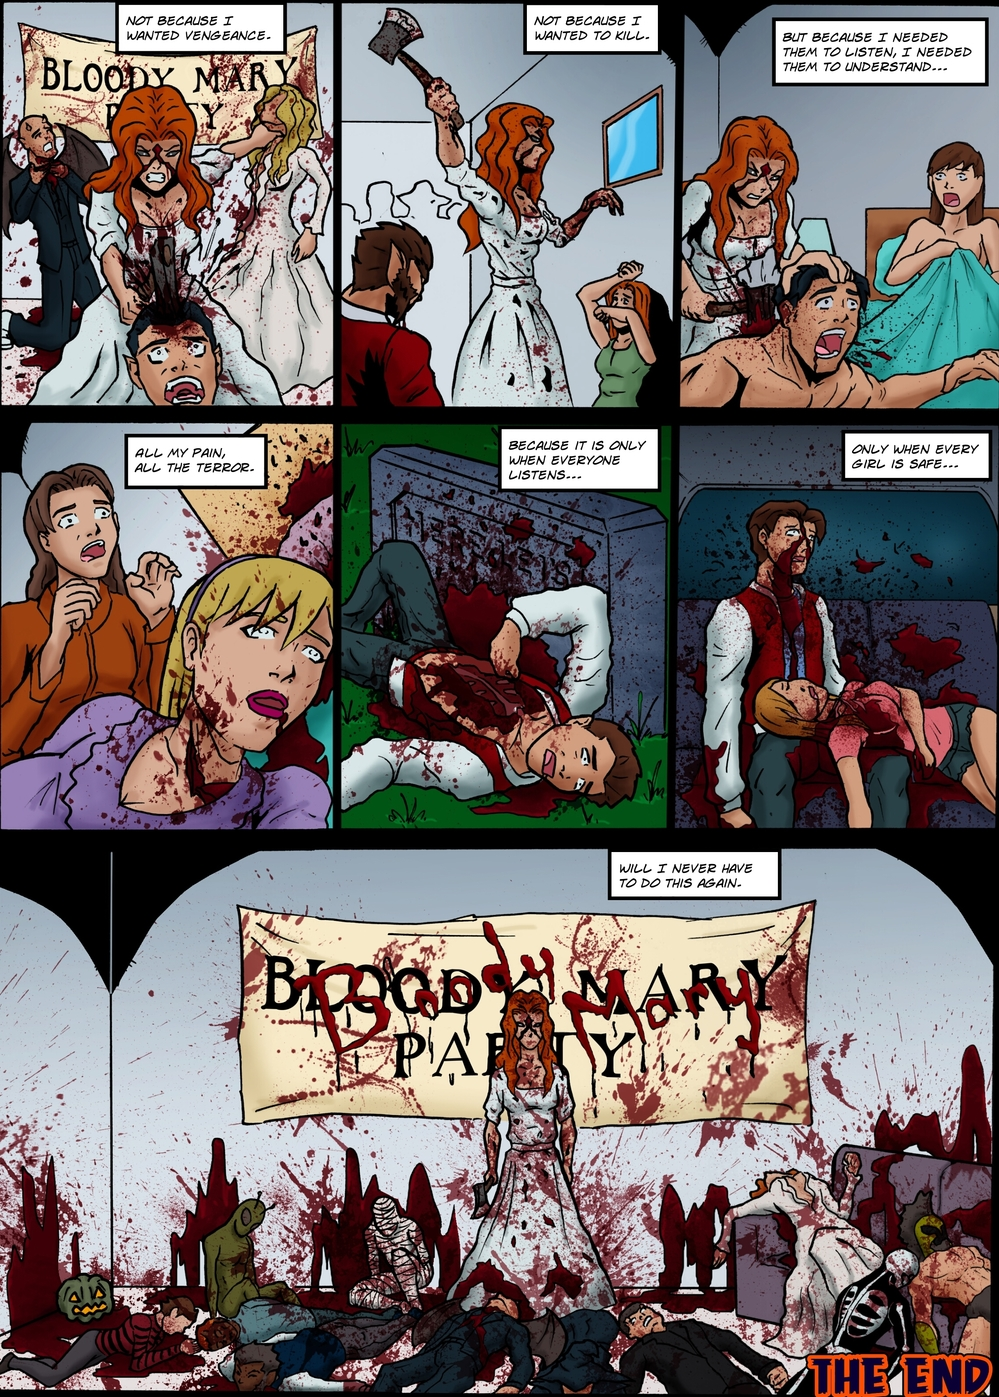 BLOODY MARY page 6 -- story 25 in The Book of Lies